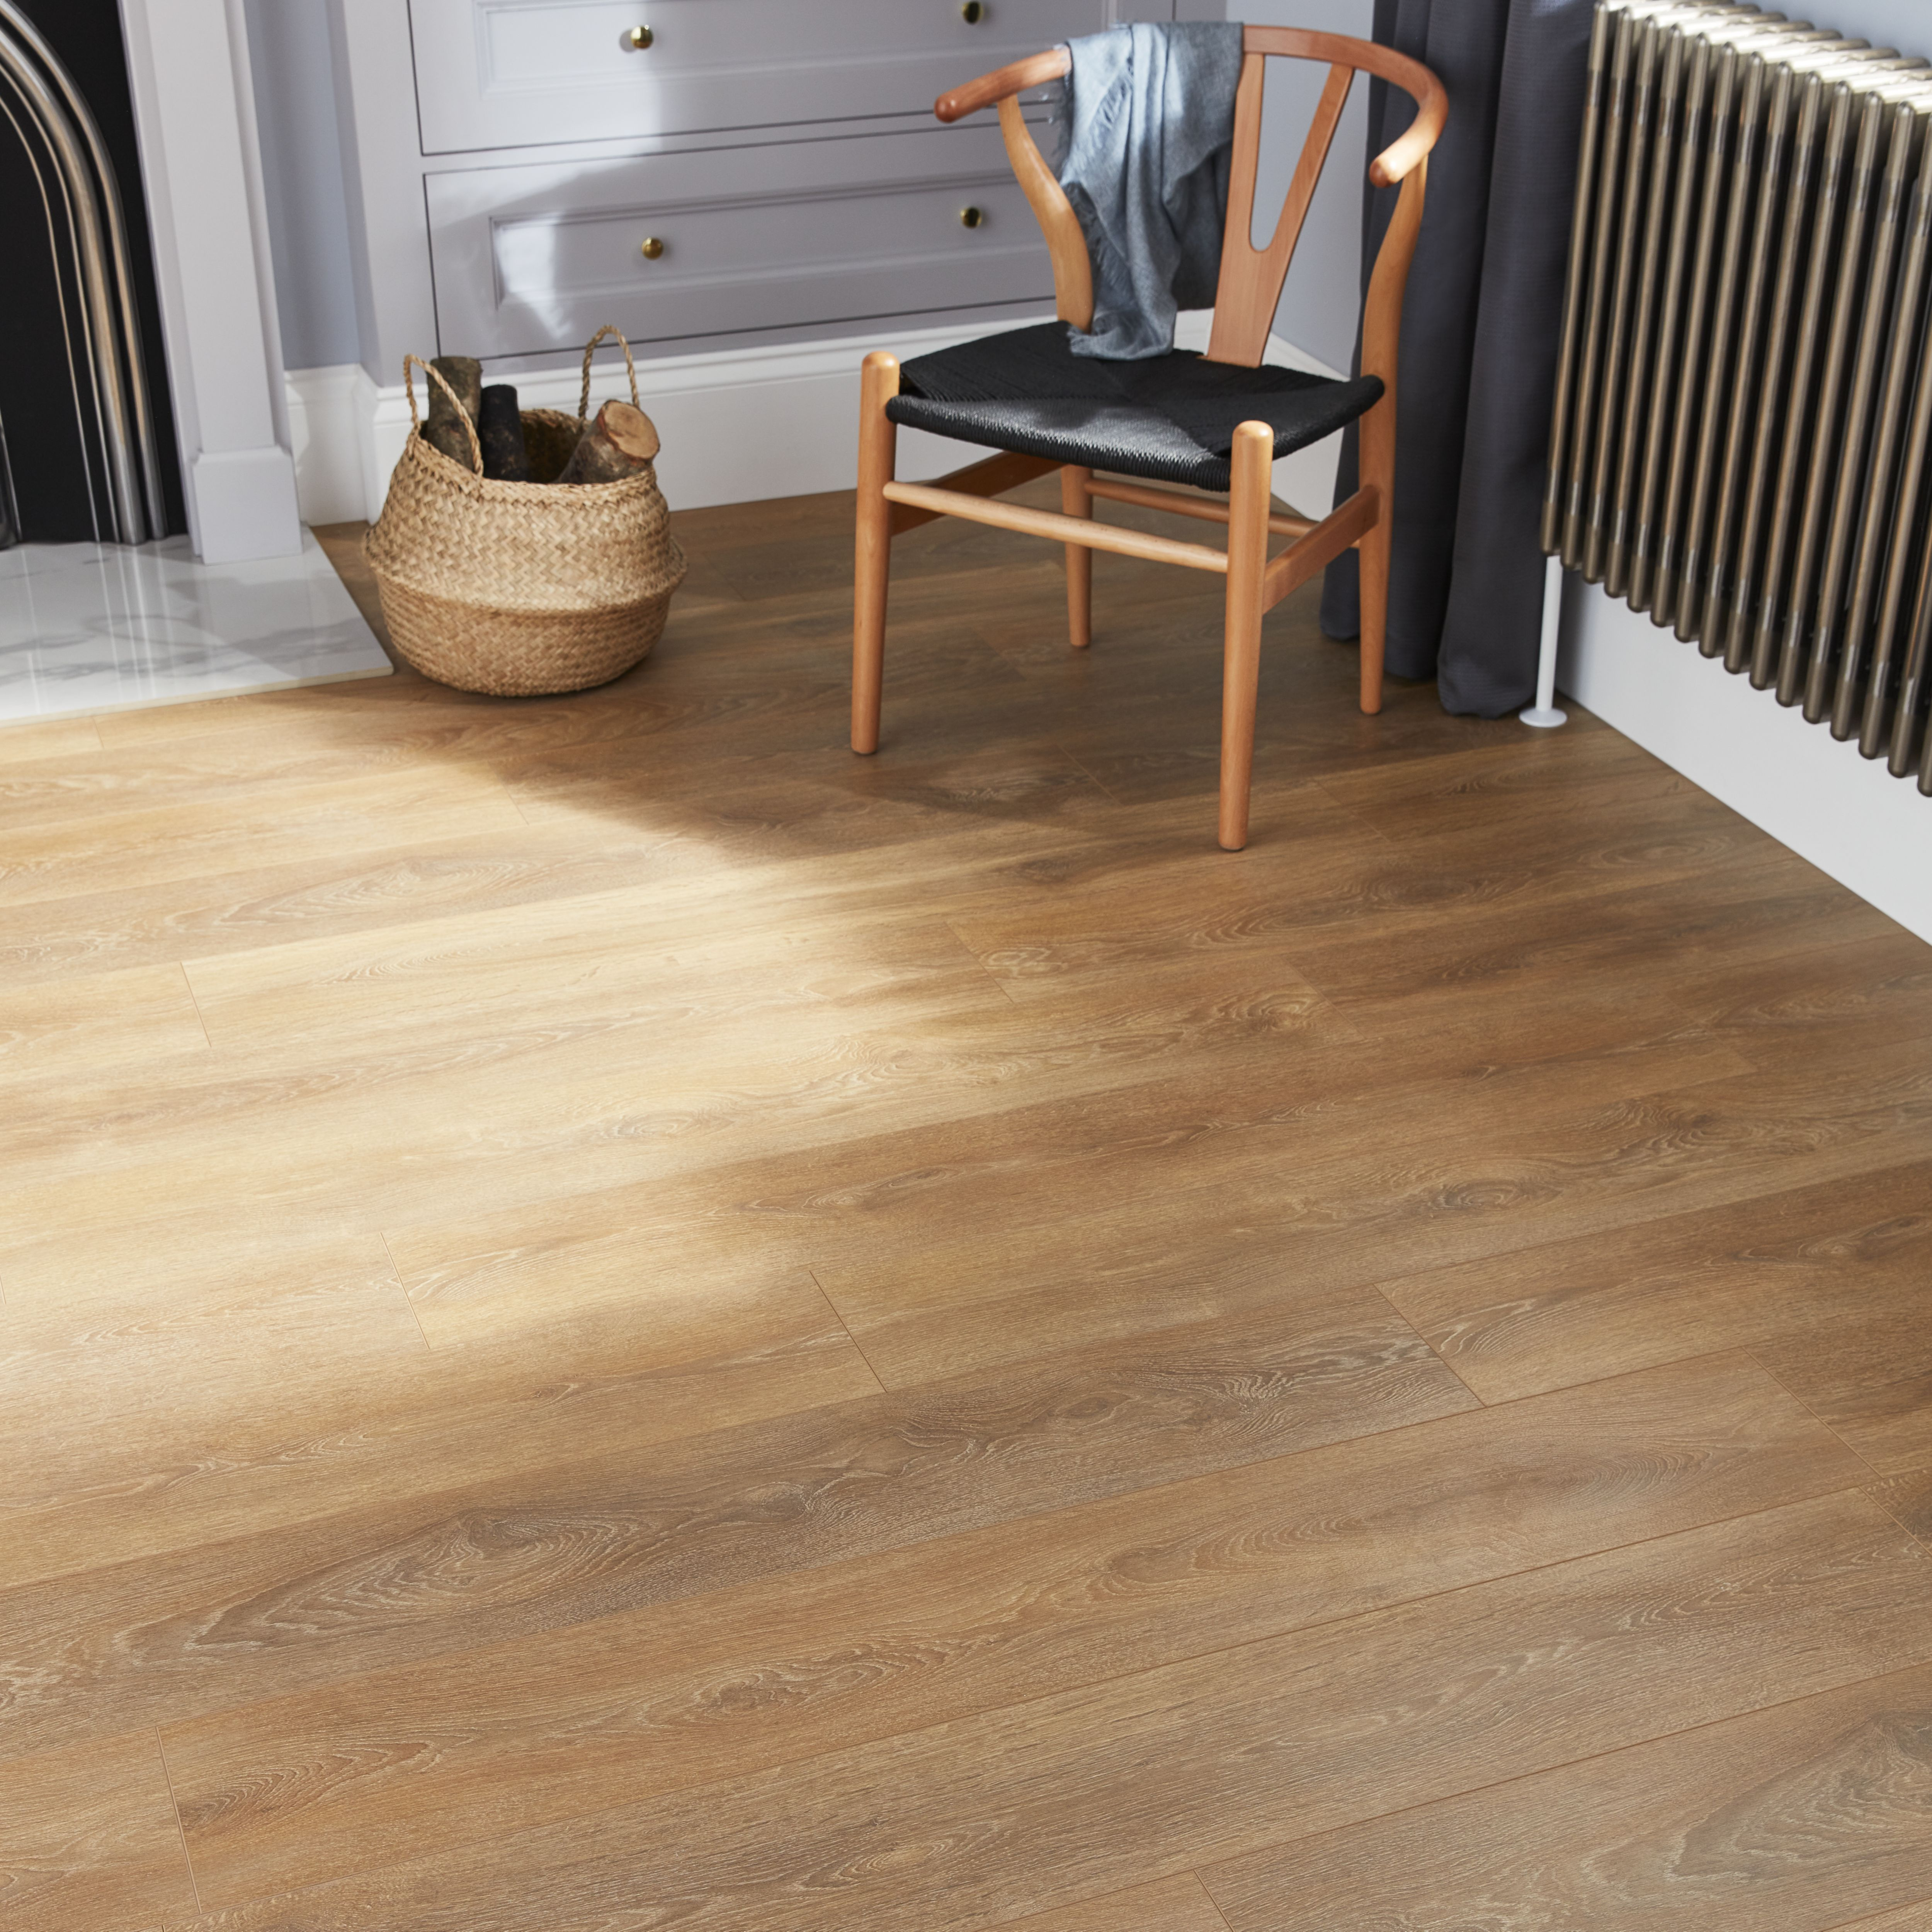 GoodHome Mossley Natural oak effect